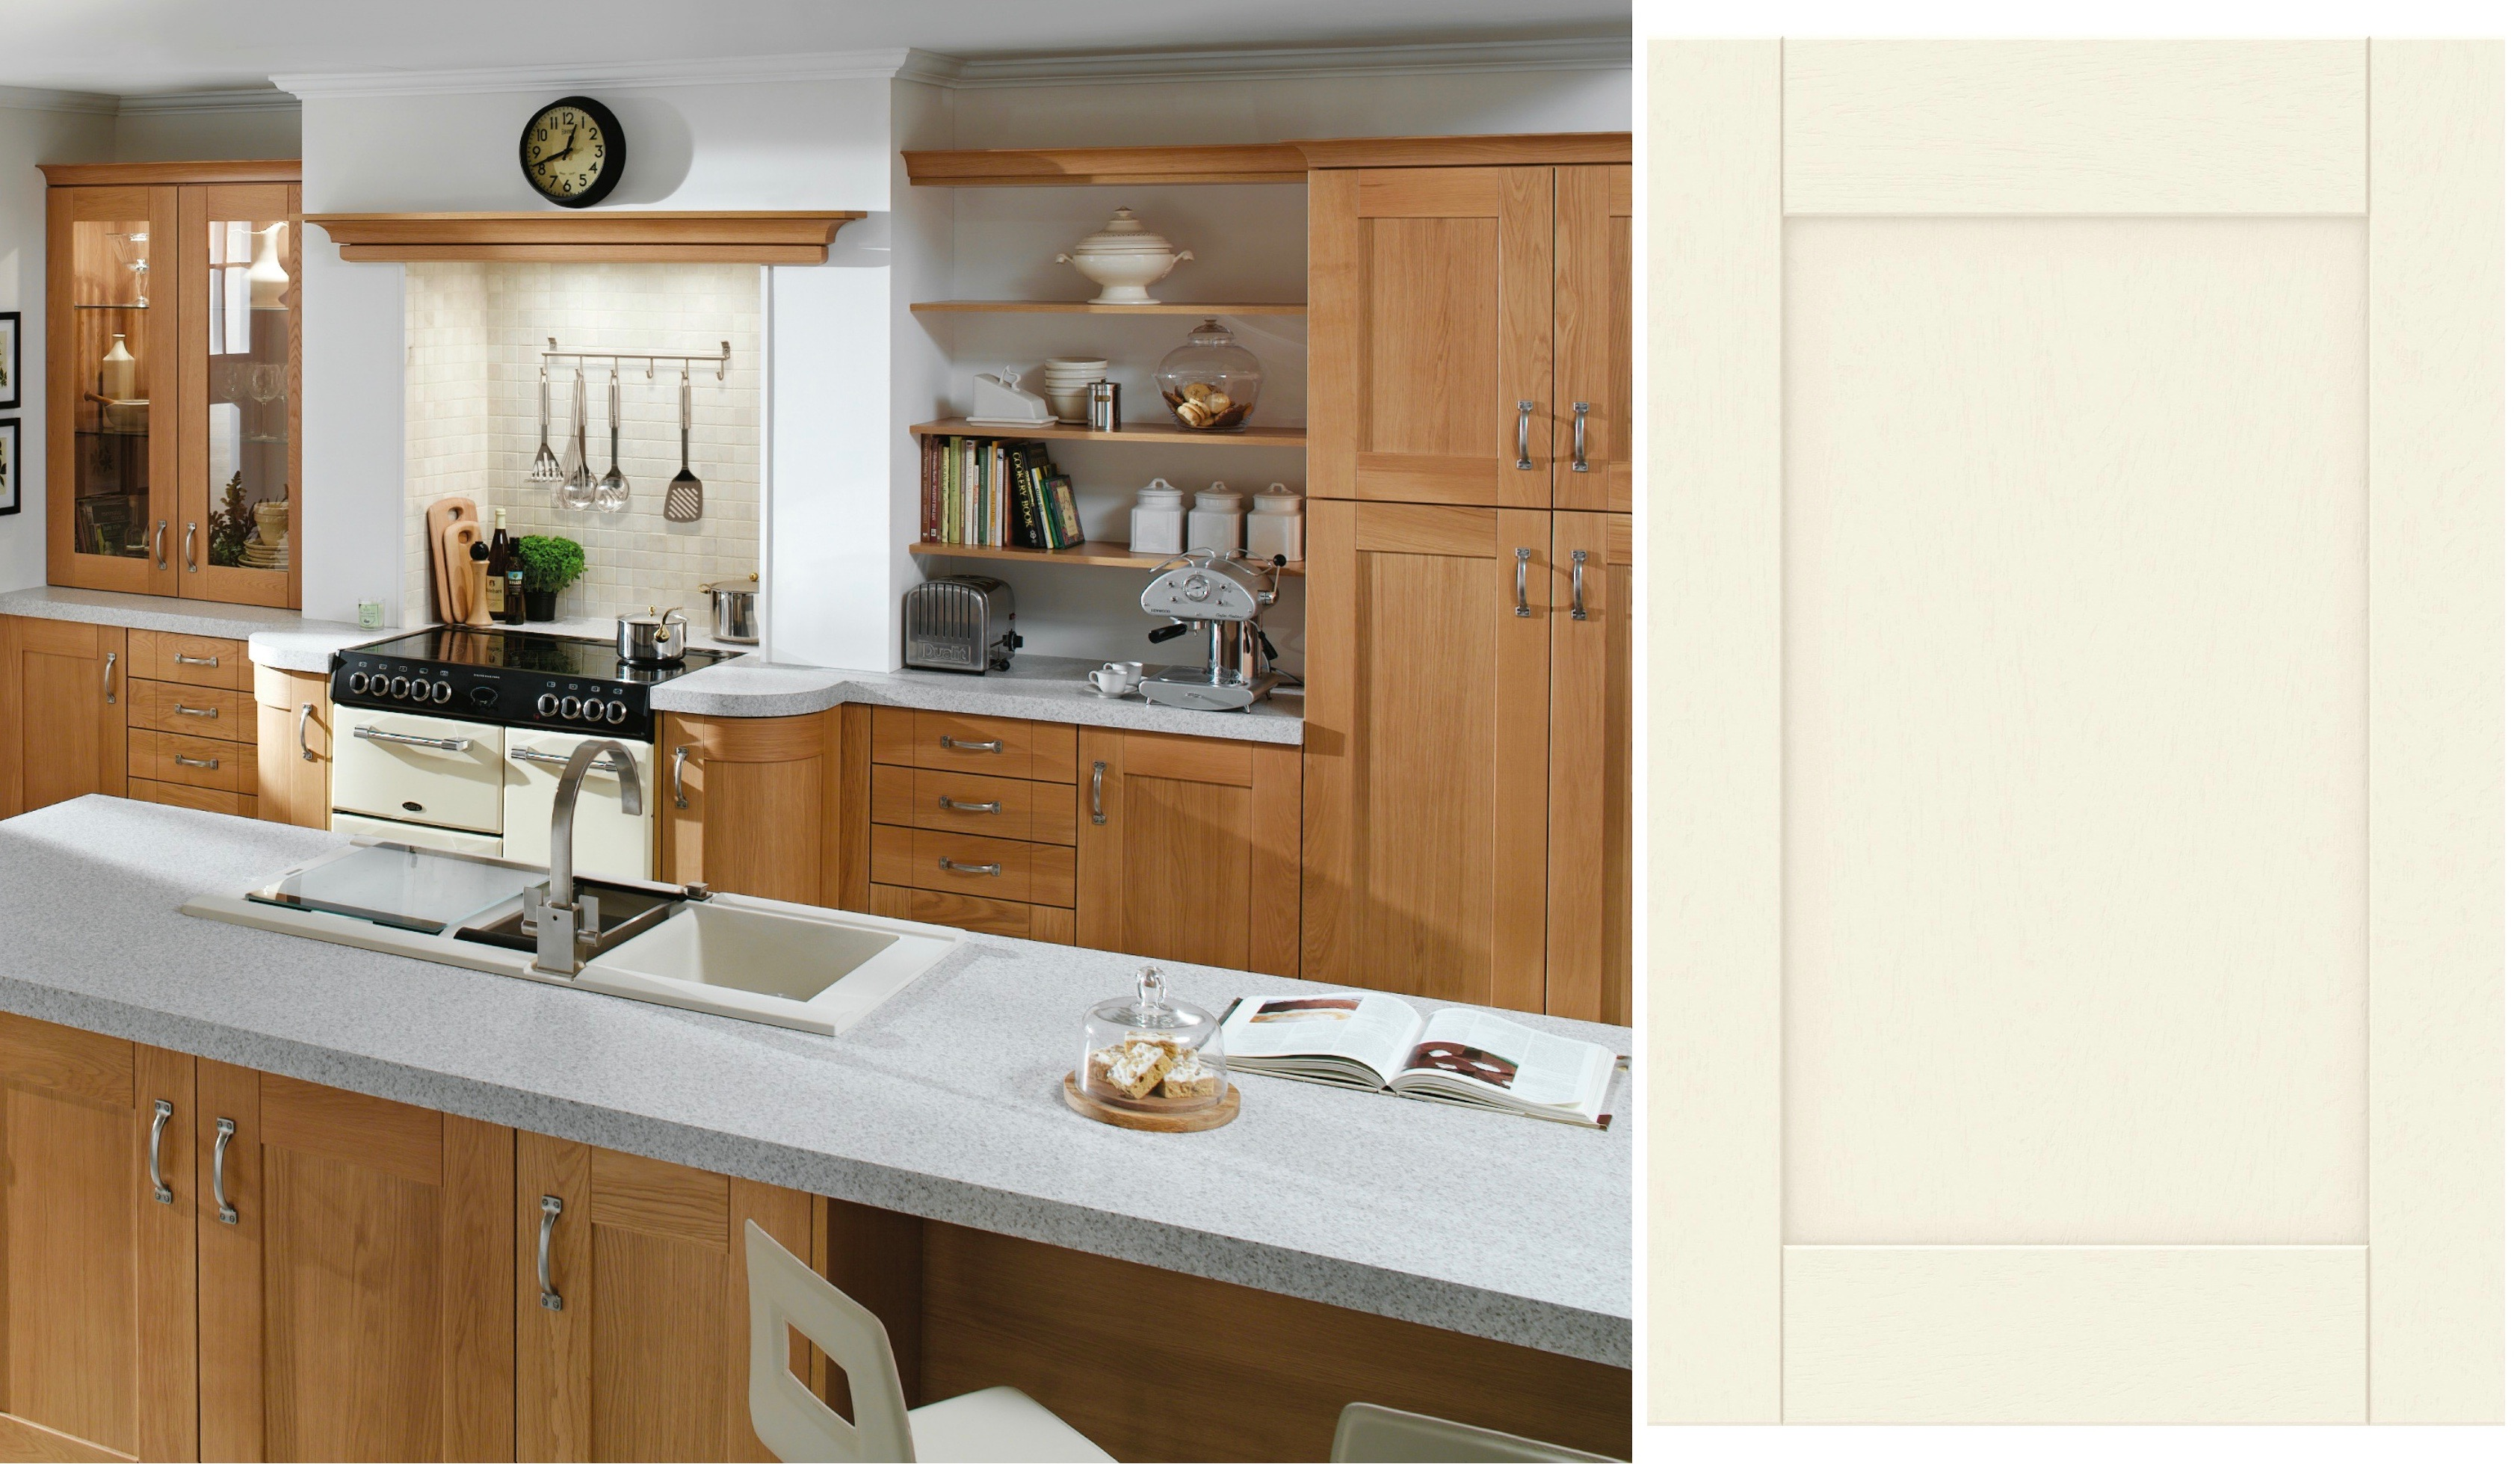 Choosing the best kitchen cabinets jct interiors for Choose kitchen cabinets